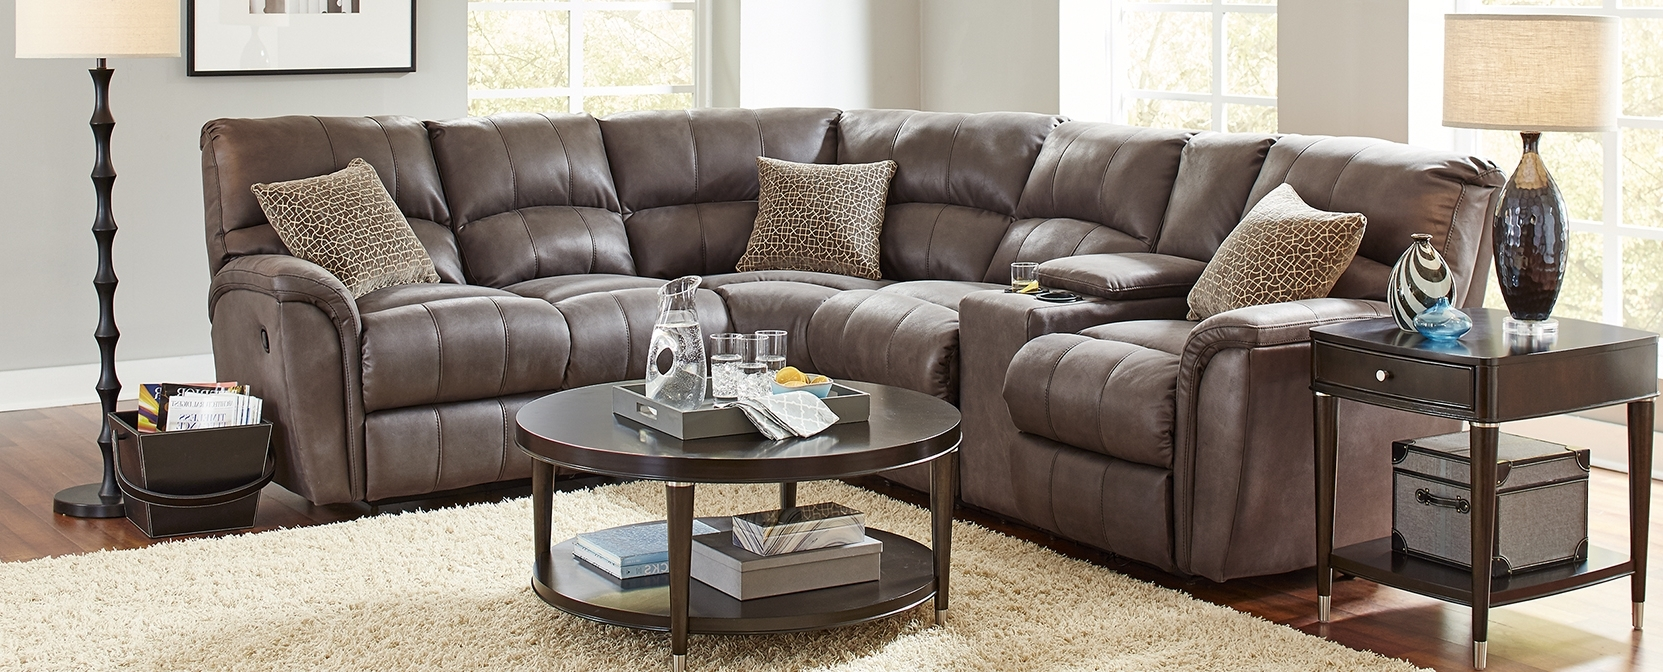 Most Up To Date Lane Furniture Sofas Intended For Sectional Couches (View 11 of 15)